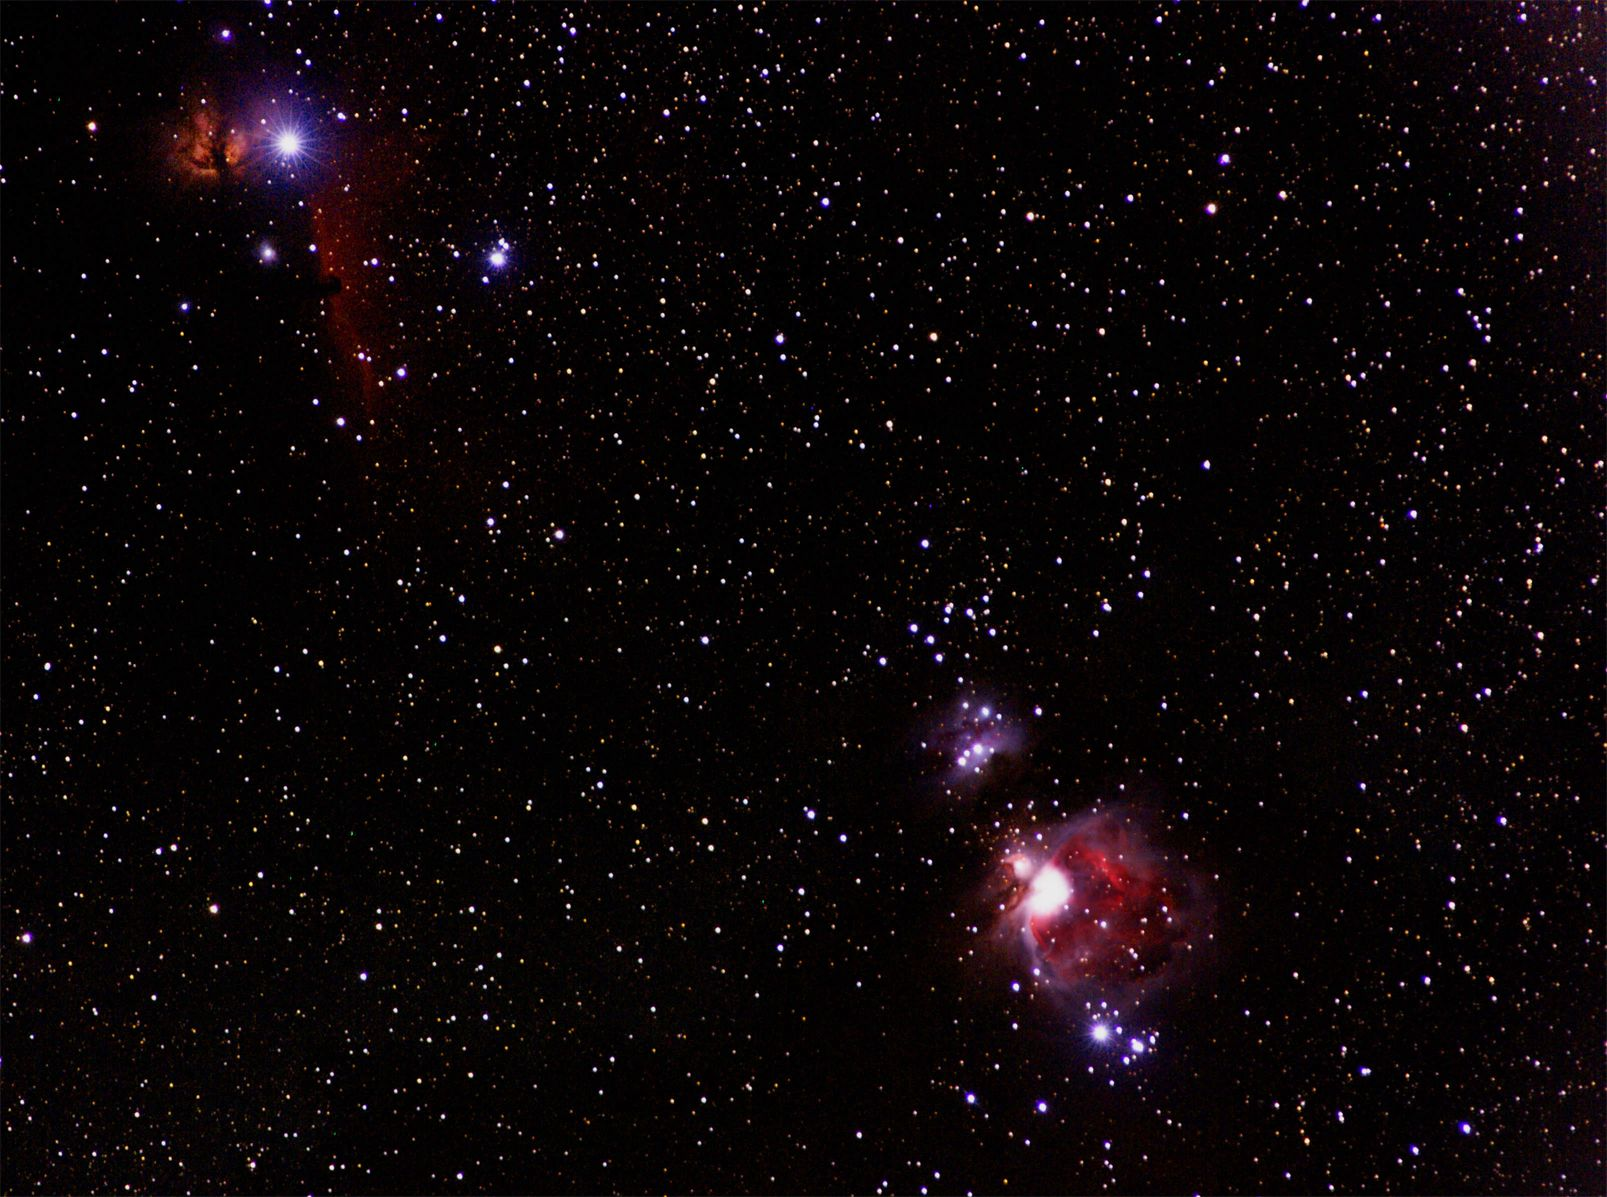 eskimo nebula location orion - photo #39